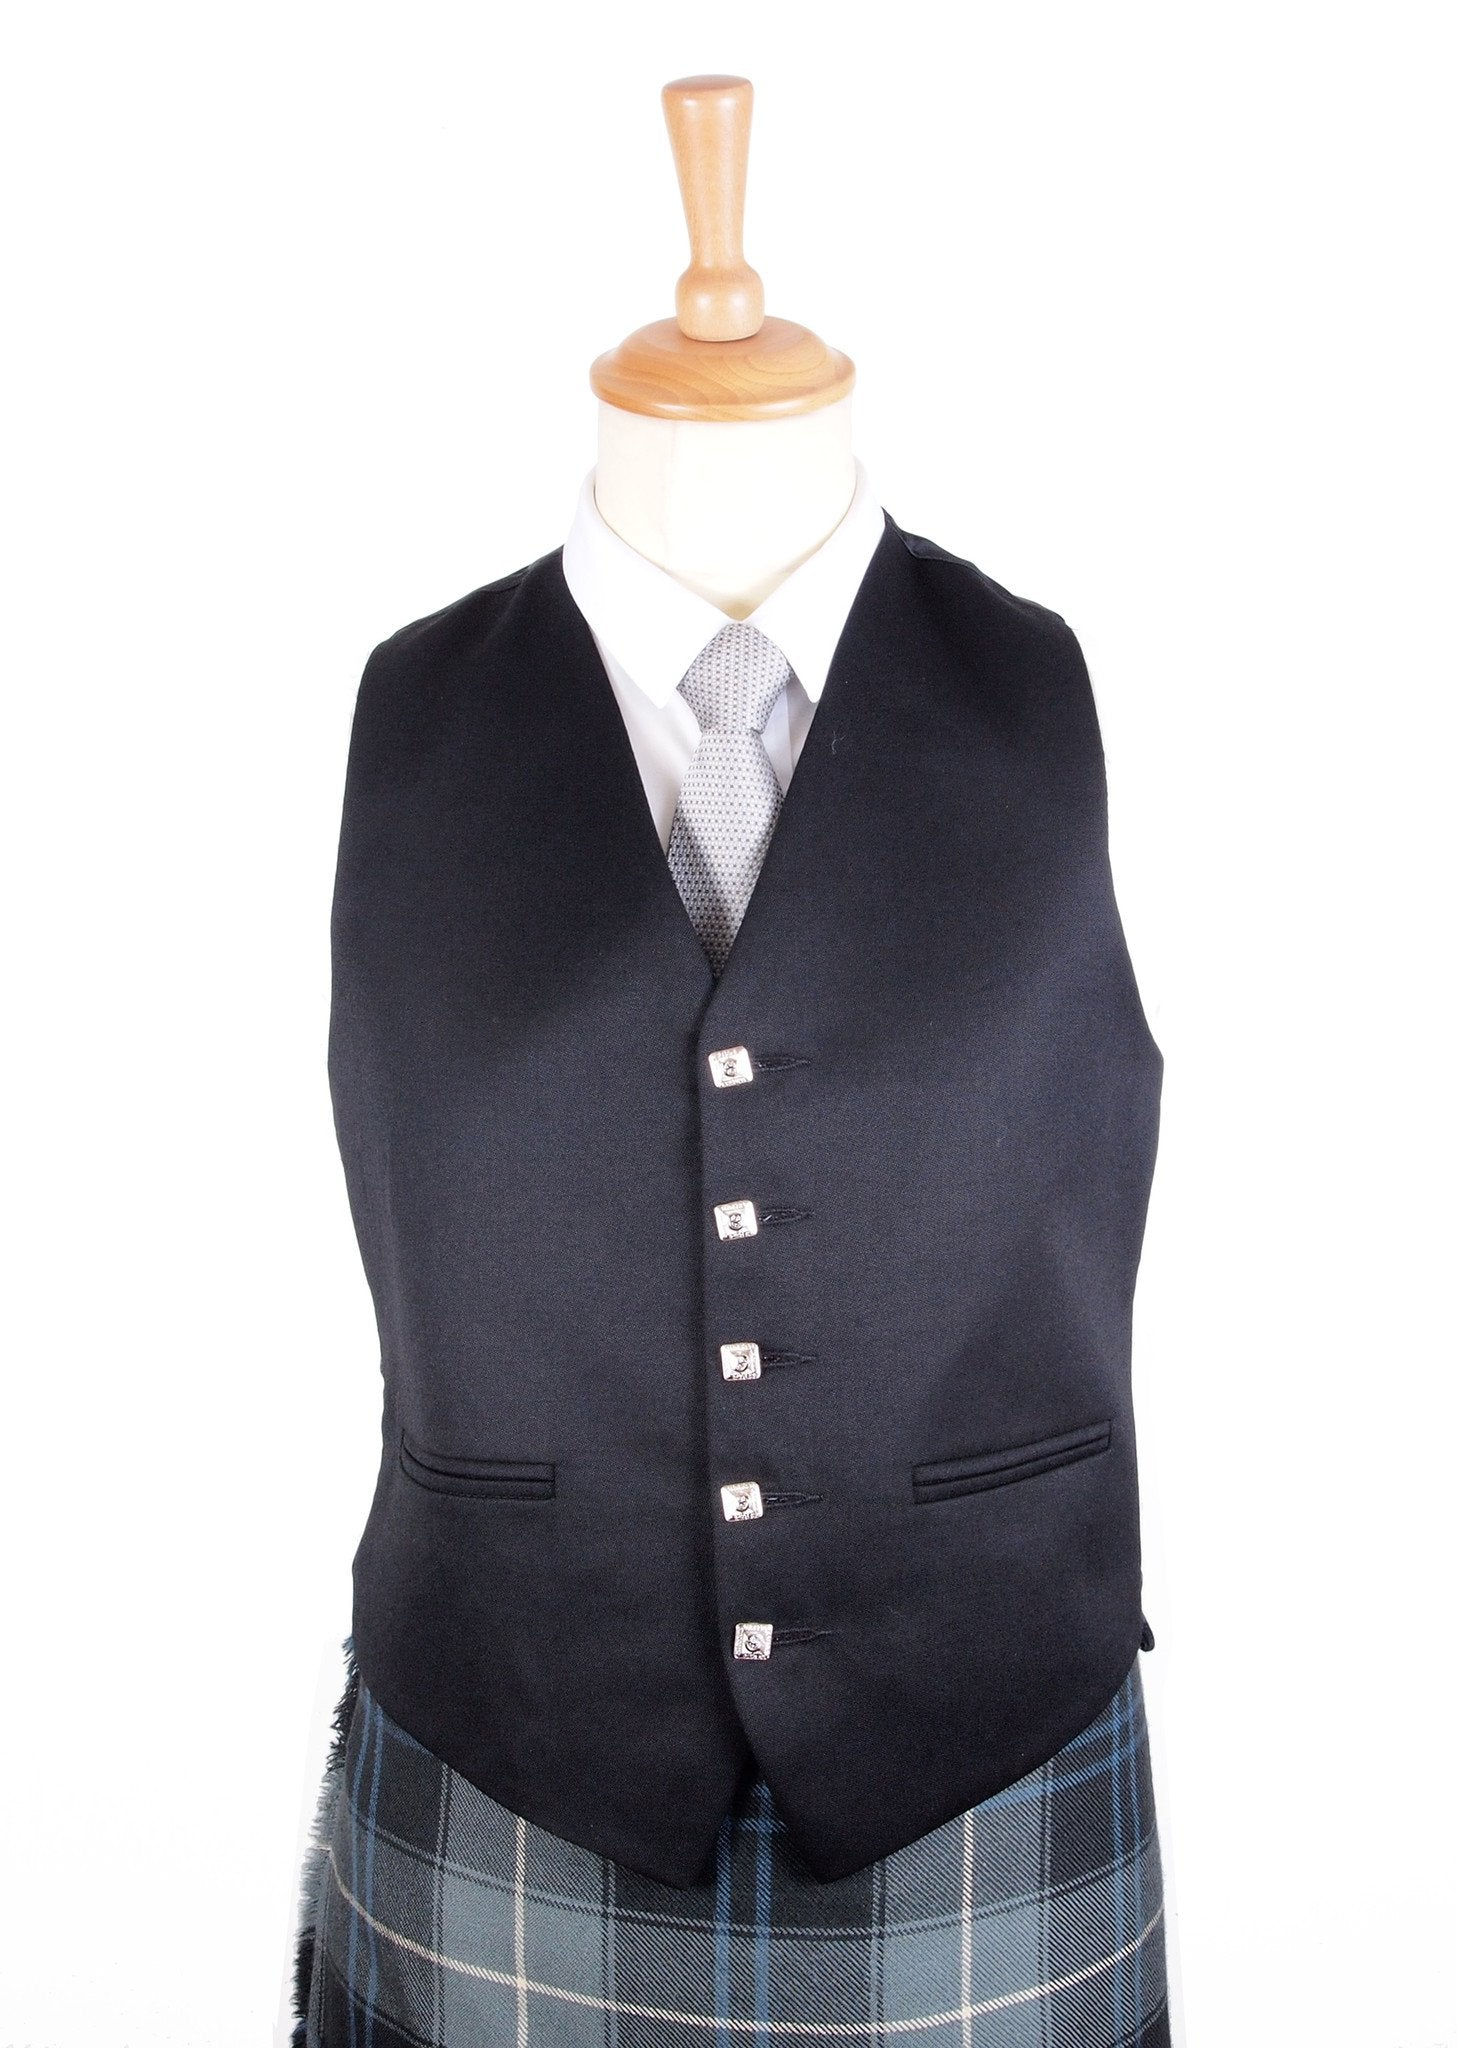 Argyle Jacket & Vest - Celtic Corner / Scottish Treasures